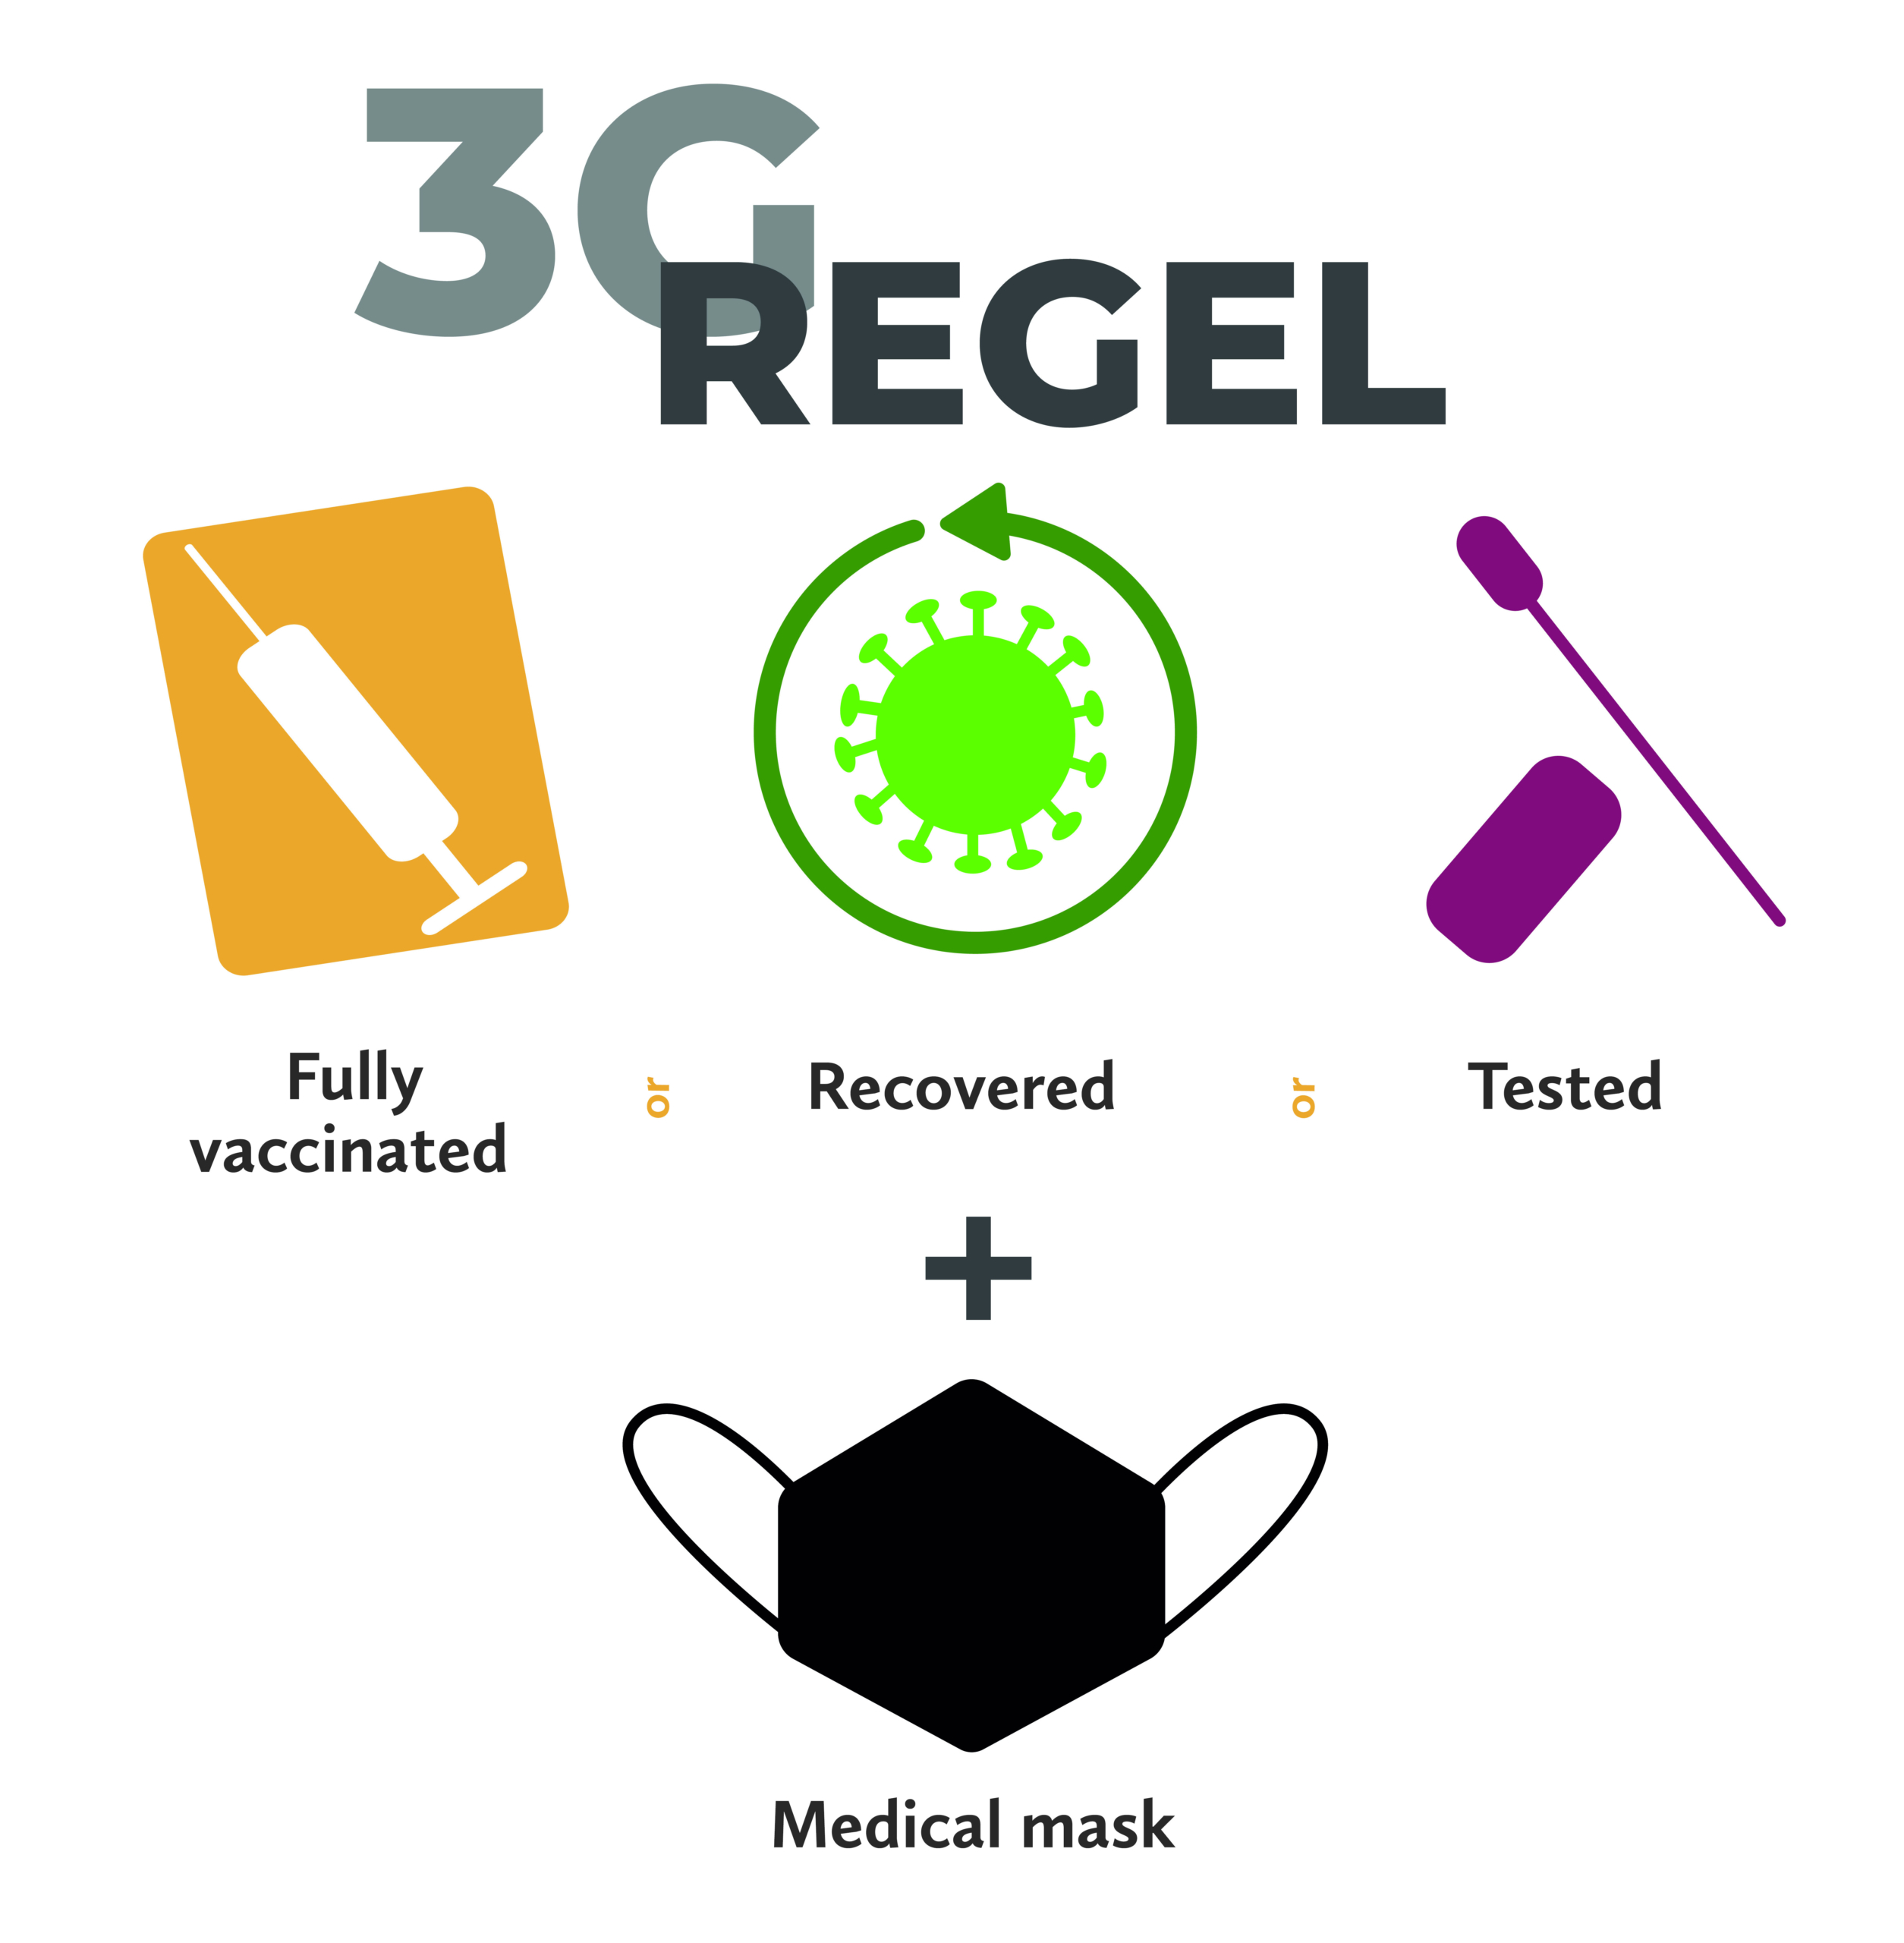 3G Regel Vaccinated Recovered Tested medical mask